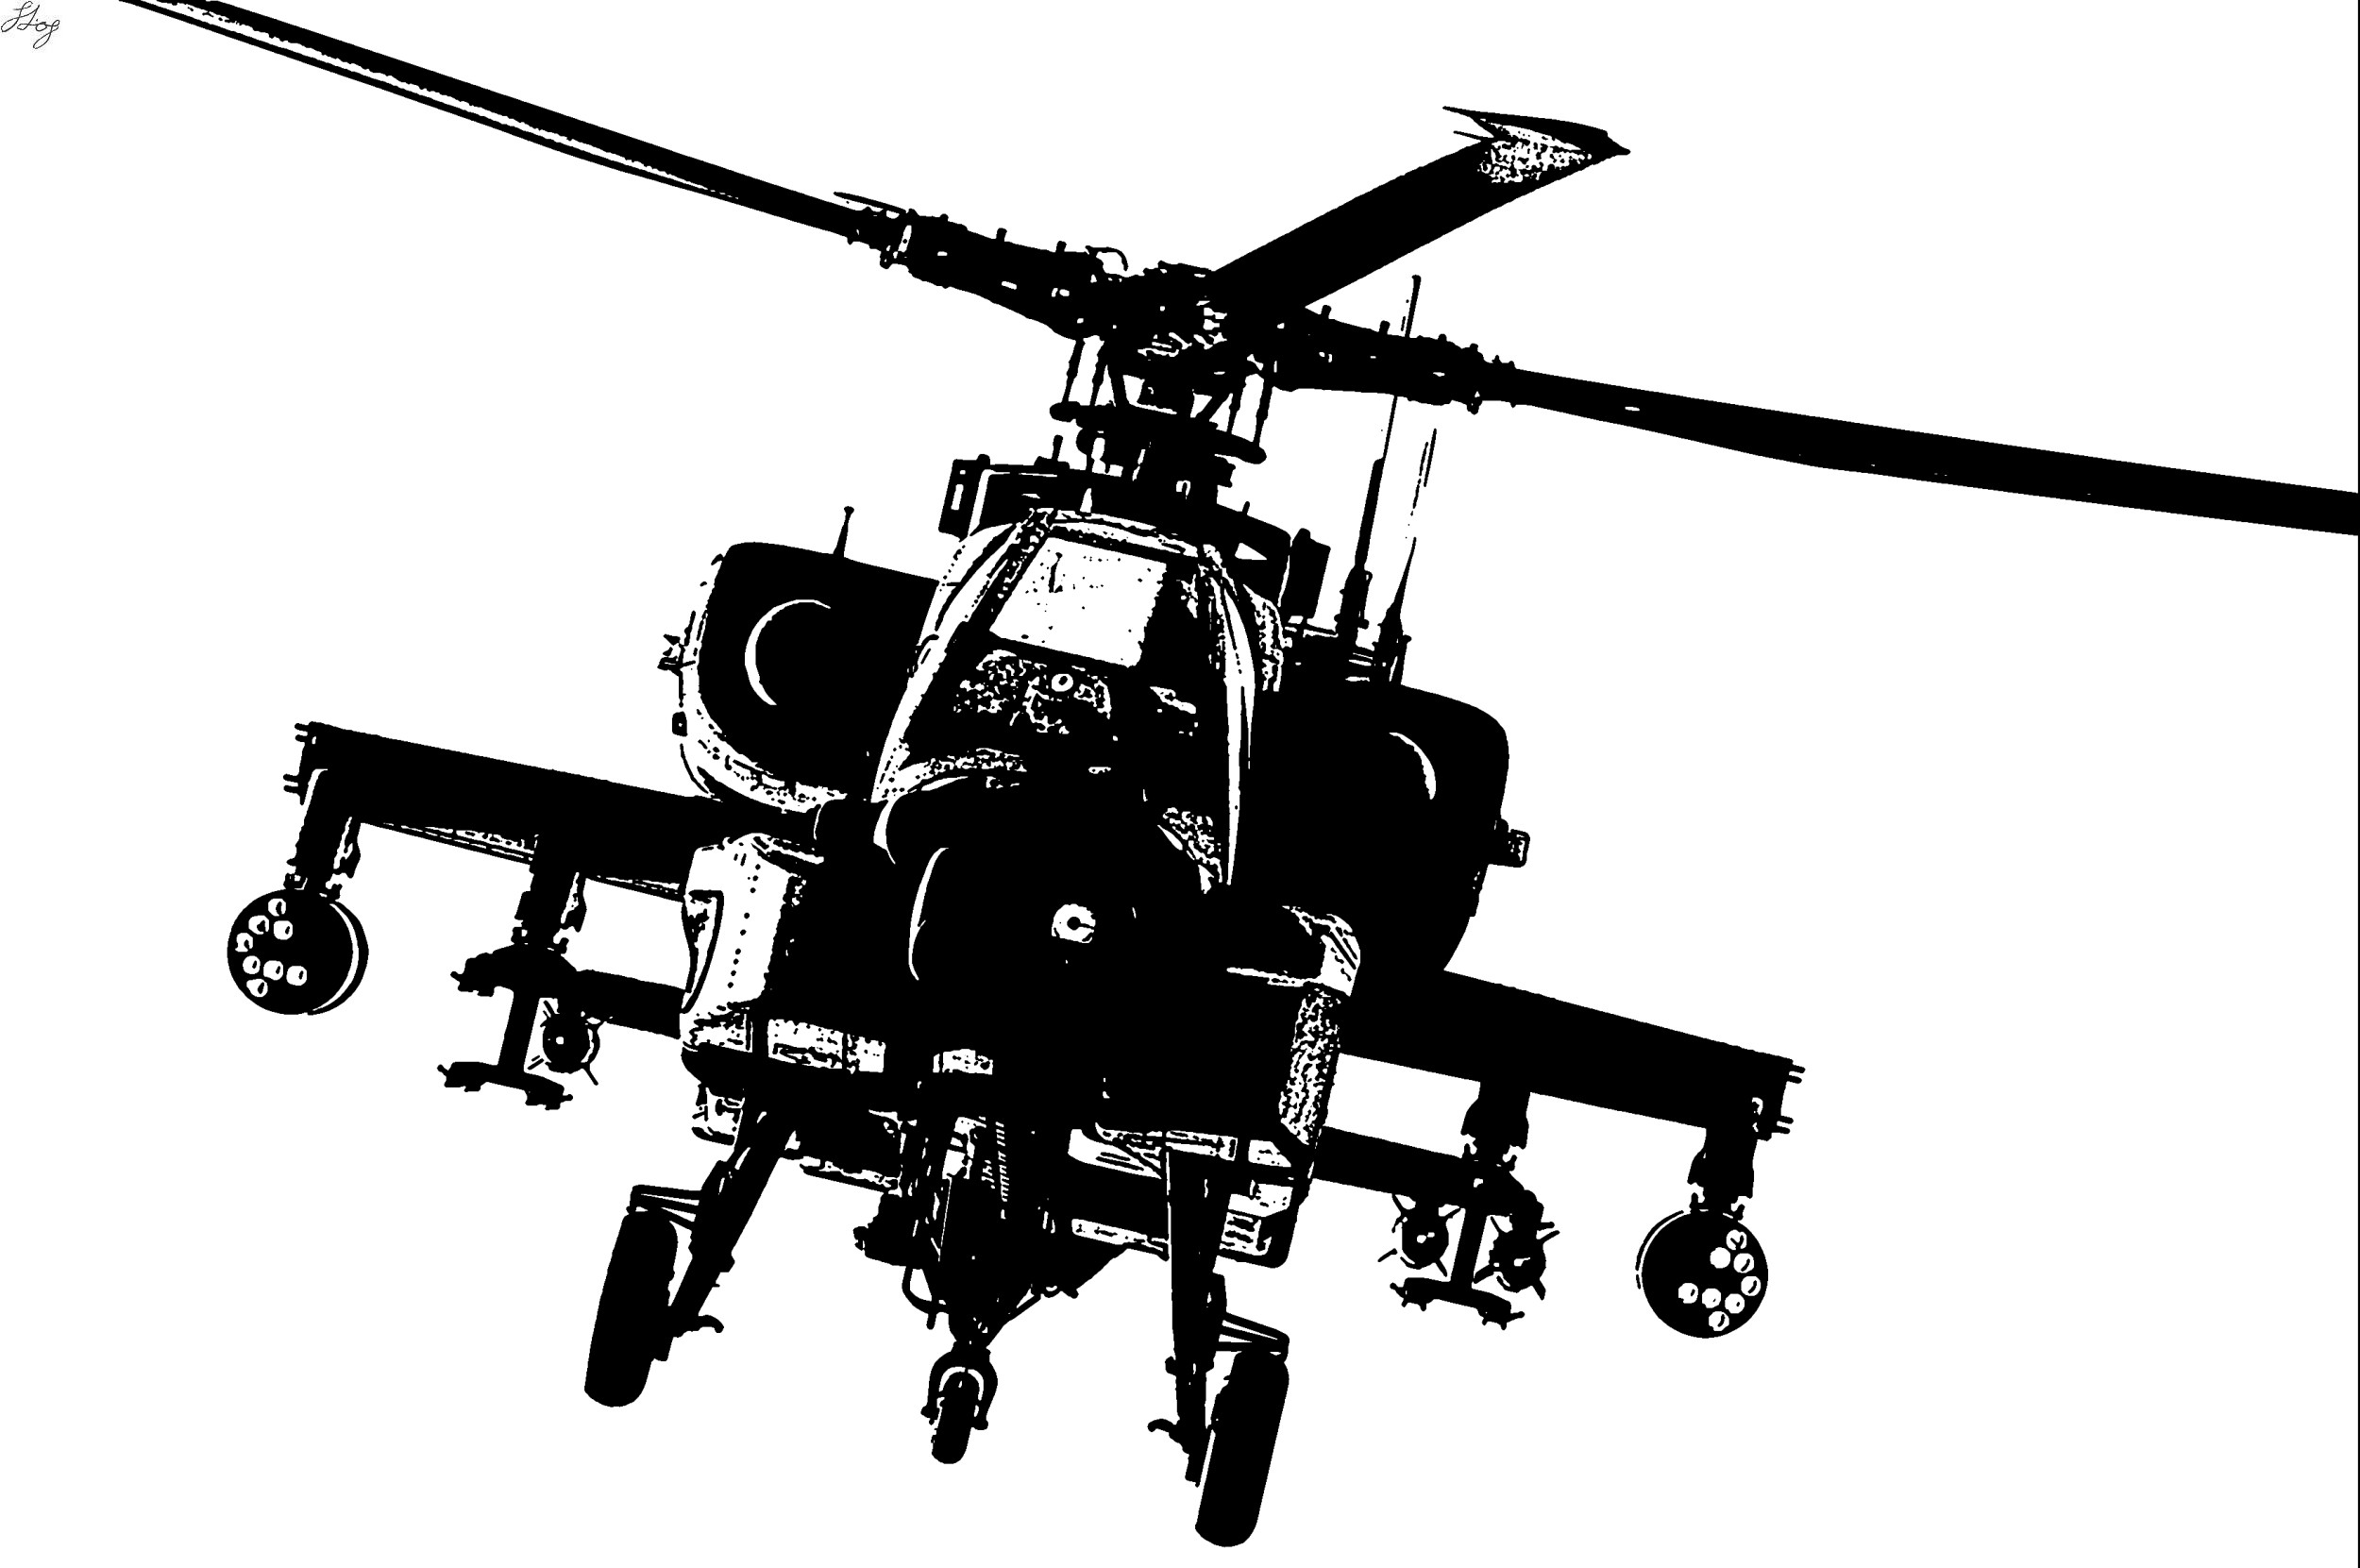 Attack Helicopter clipart #20, Download drawings